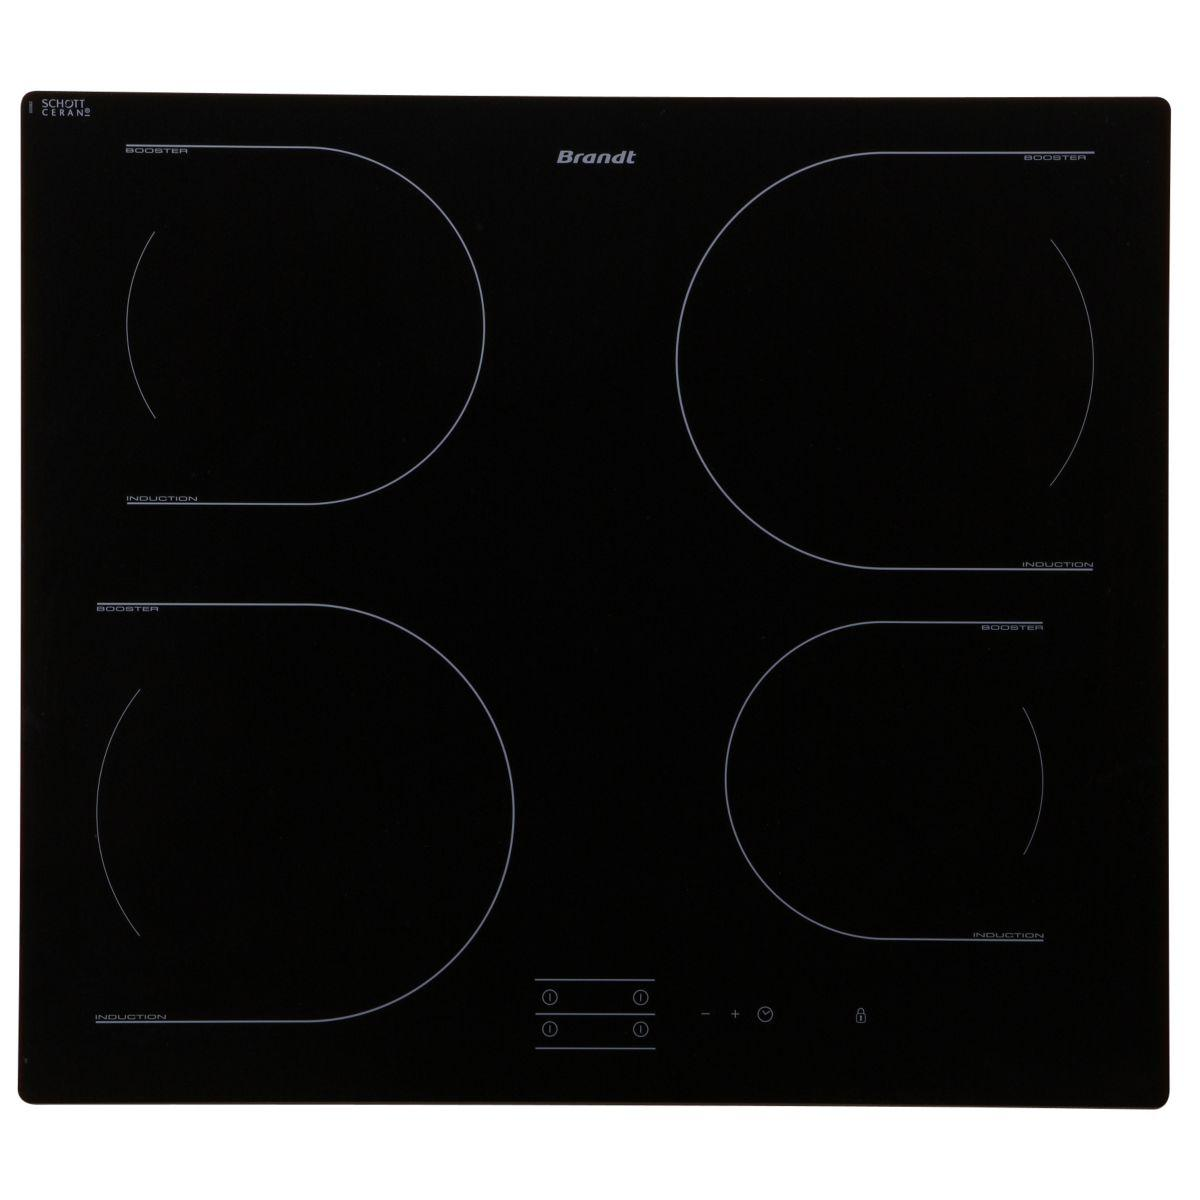 Lectrom nager table de cuisson induction brandt ti112b - Table induction brandt ...